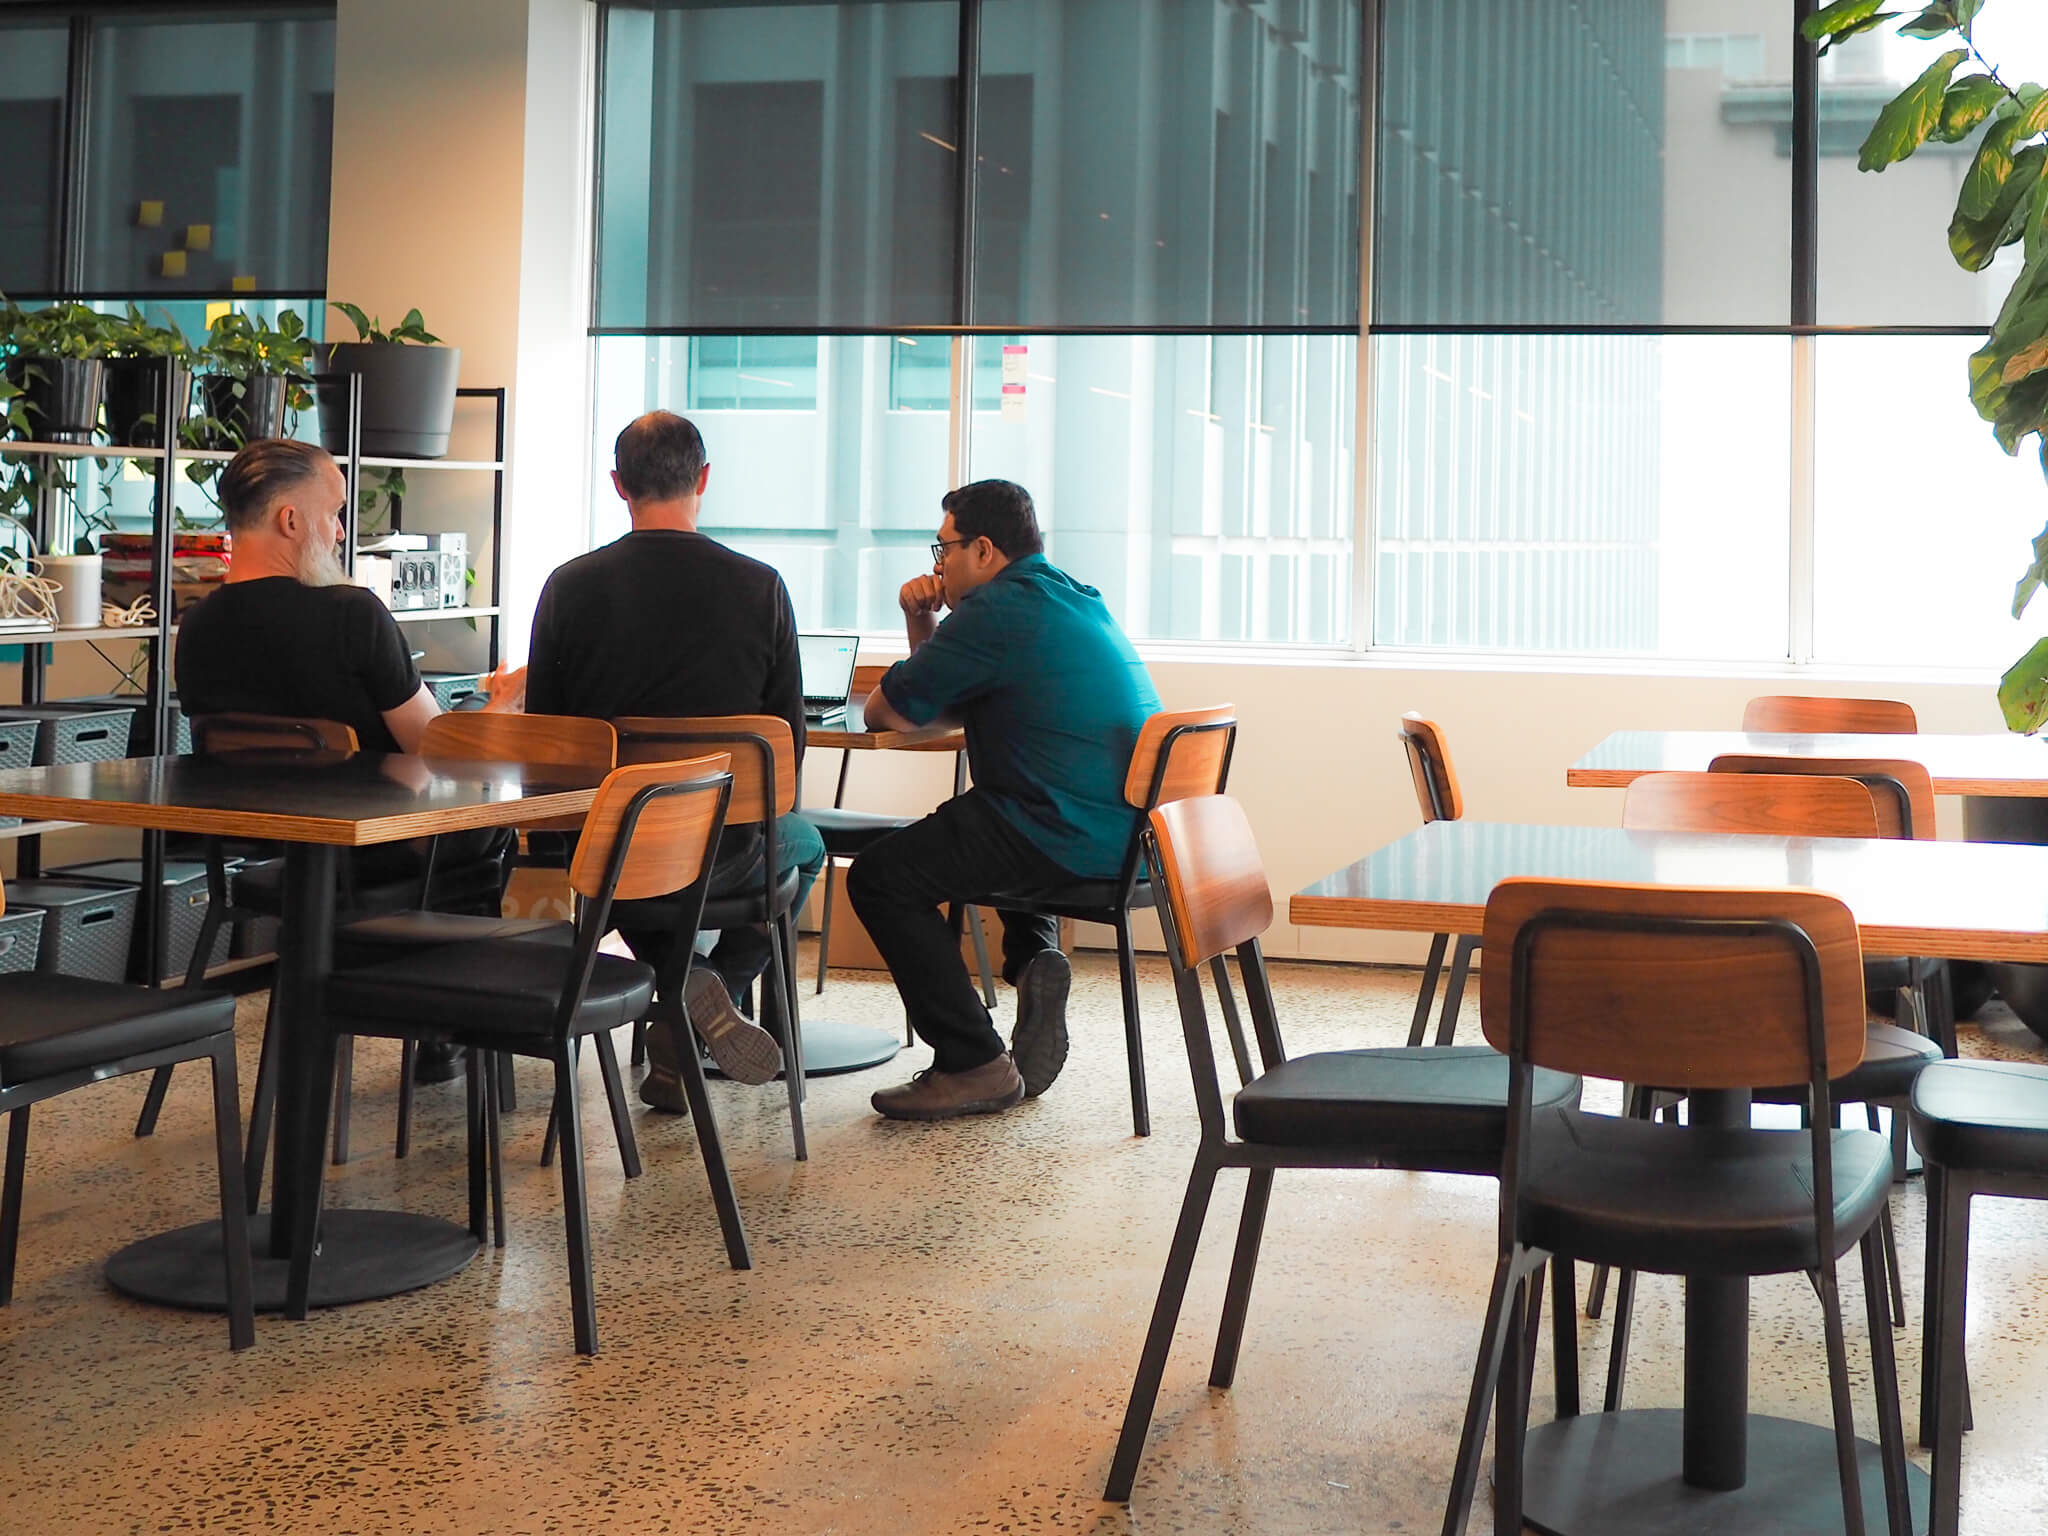 Business conversation, melbourne office, office plants, office sitting area, adults talking, business analyst, product owner, technical discussion, work colleagues, strategy consulting, technology consulting